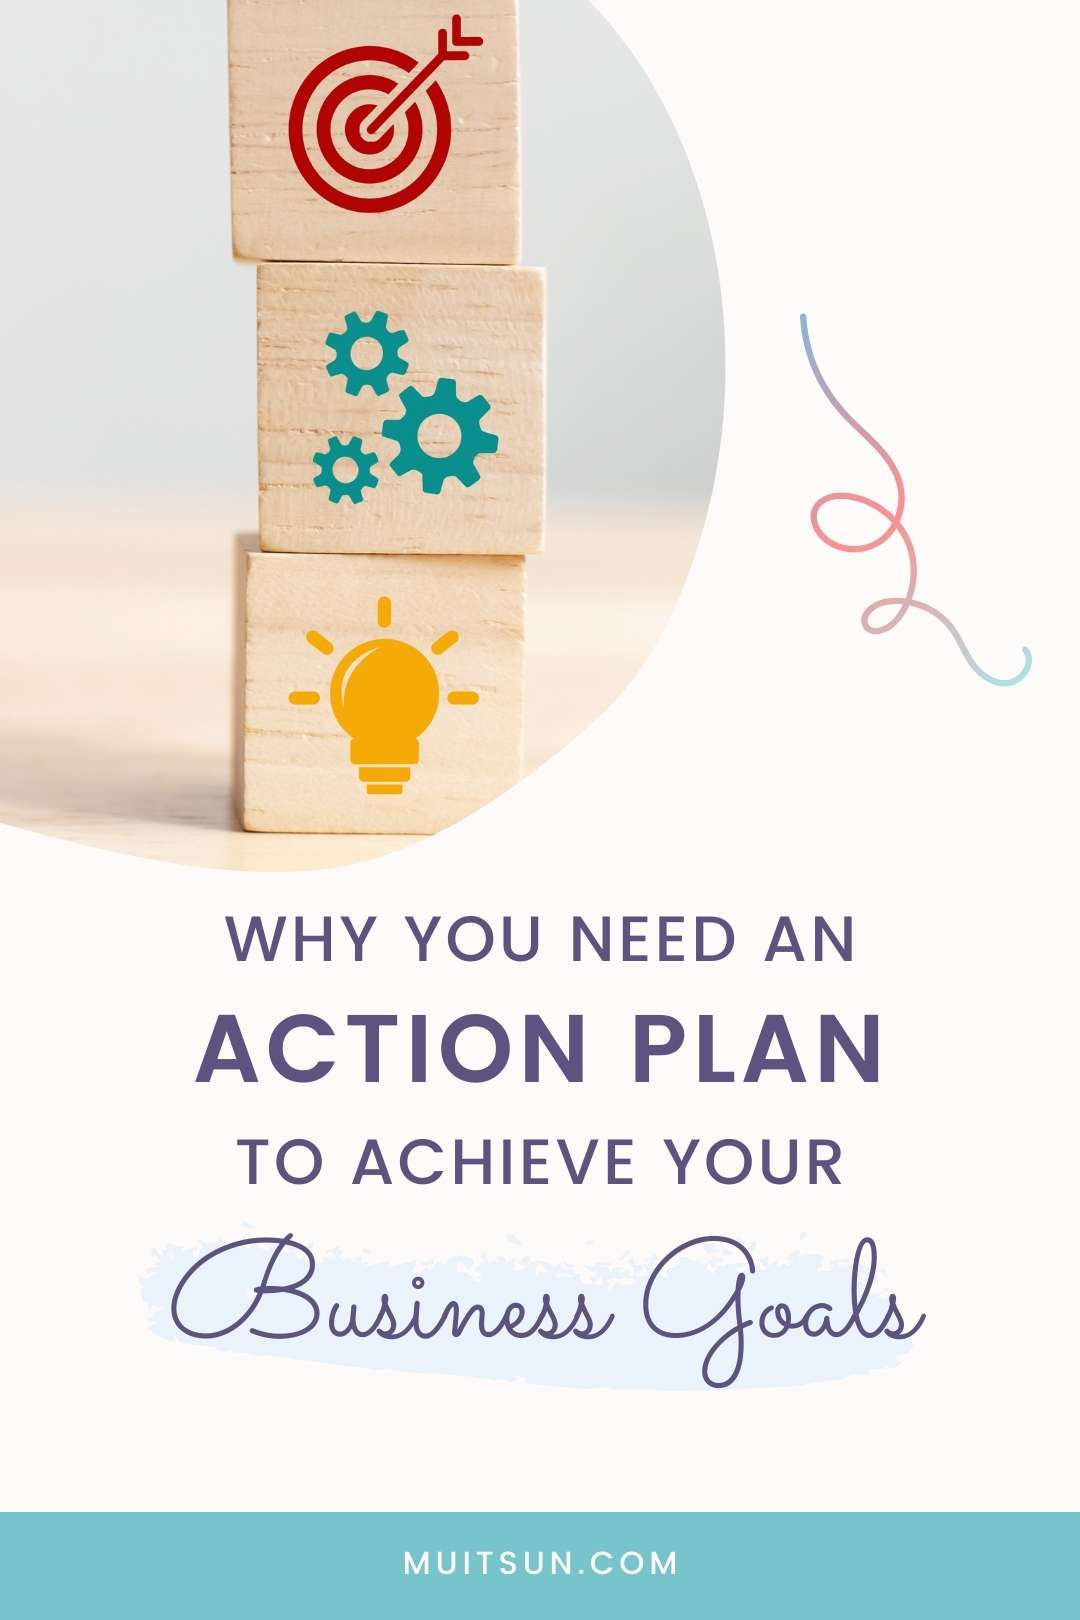 Why You Need An Action Plan to Achieve Your Business Goals